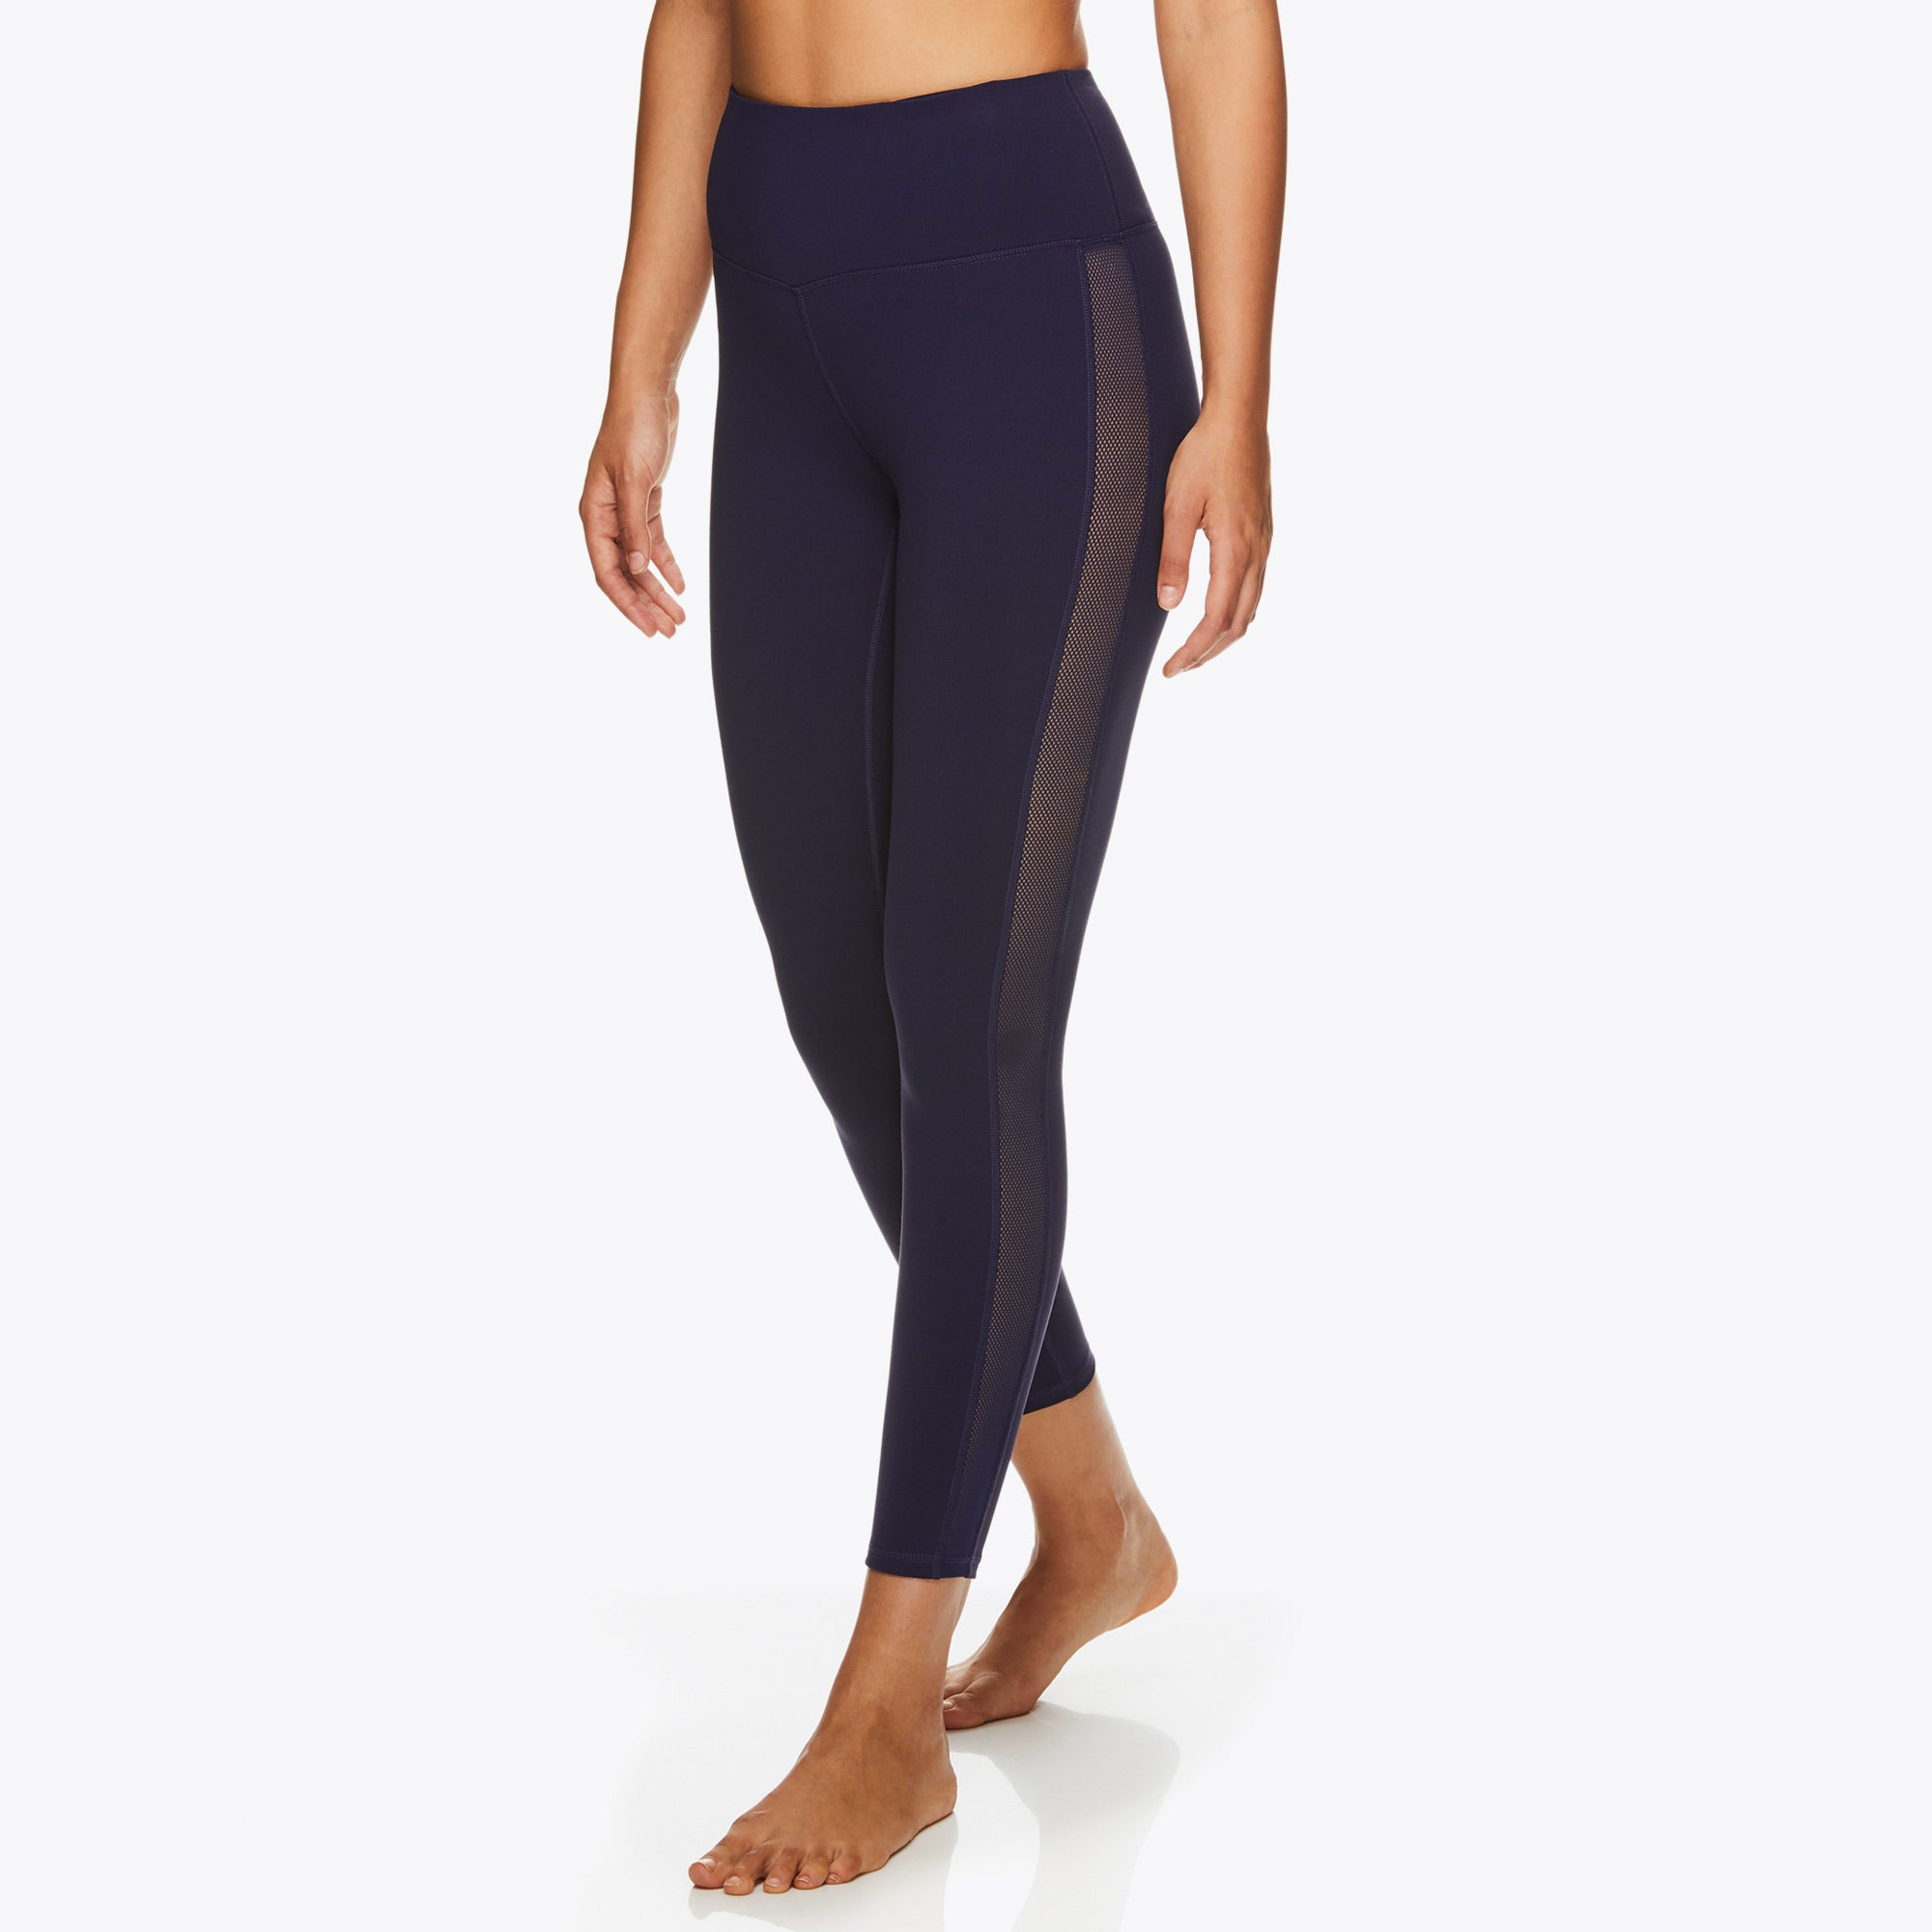 Image of Gaiam X Jessica Biel Lexington 7/8 Hi Rise Legging